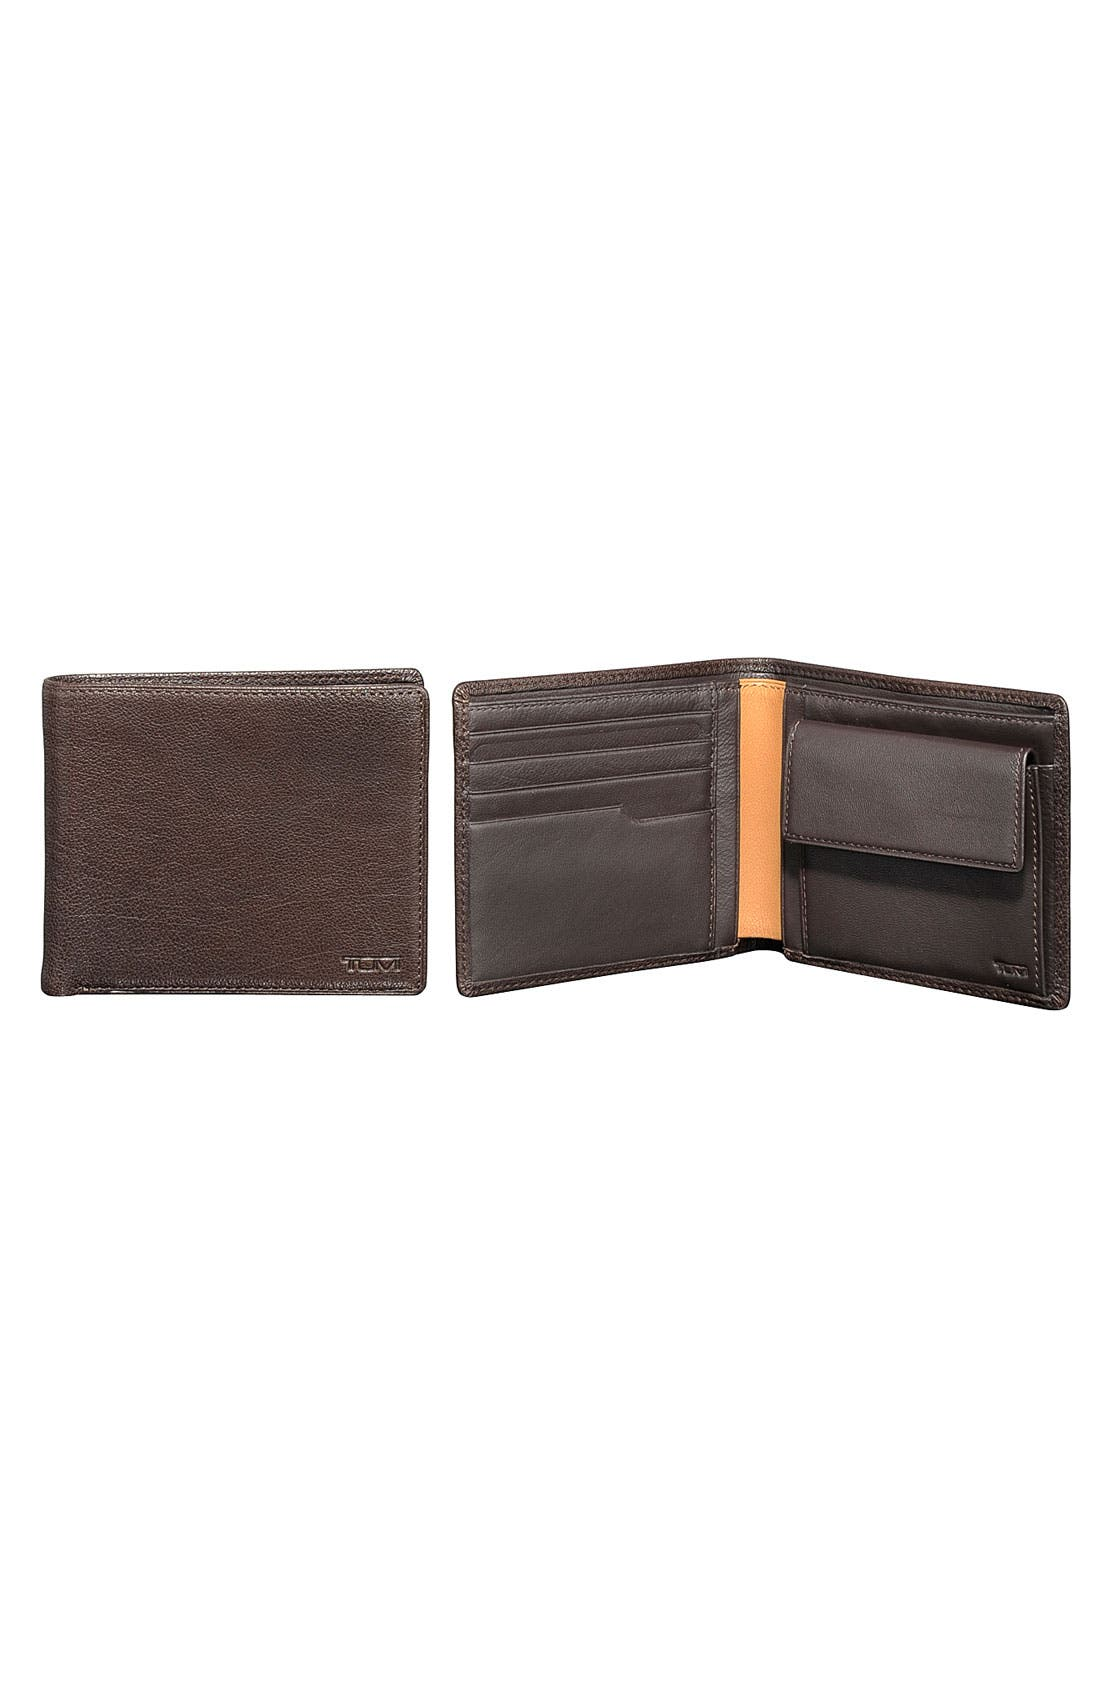 Alternate Image 1 Selected - Tumi 'Sierra - Global' Coin Wallet